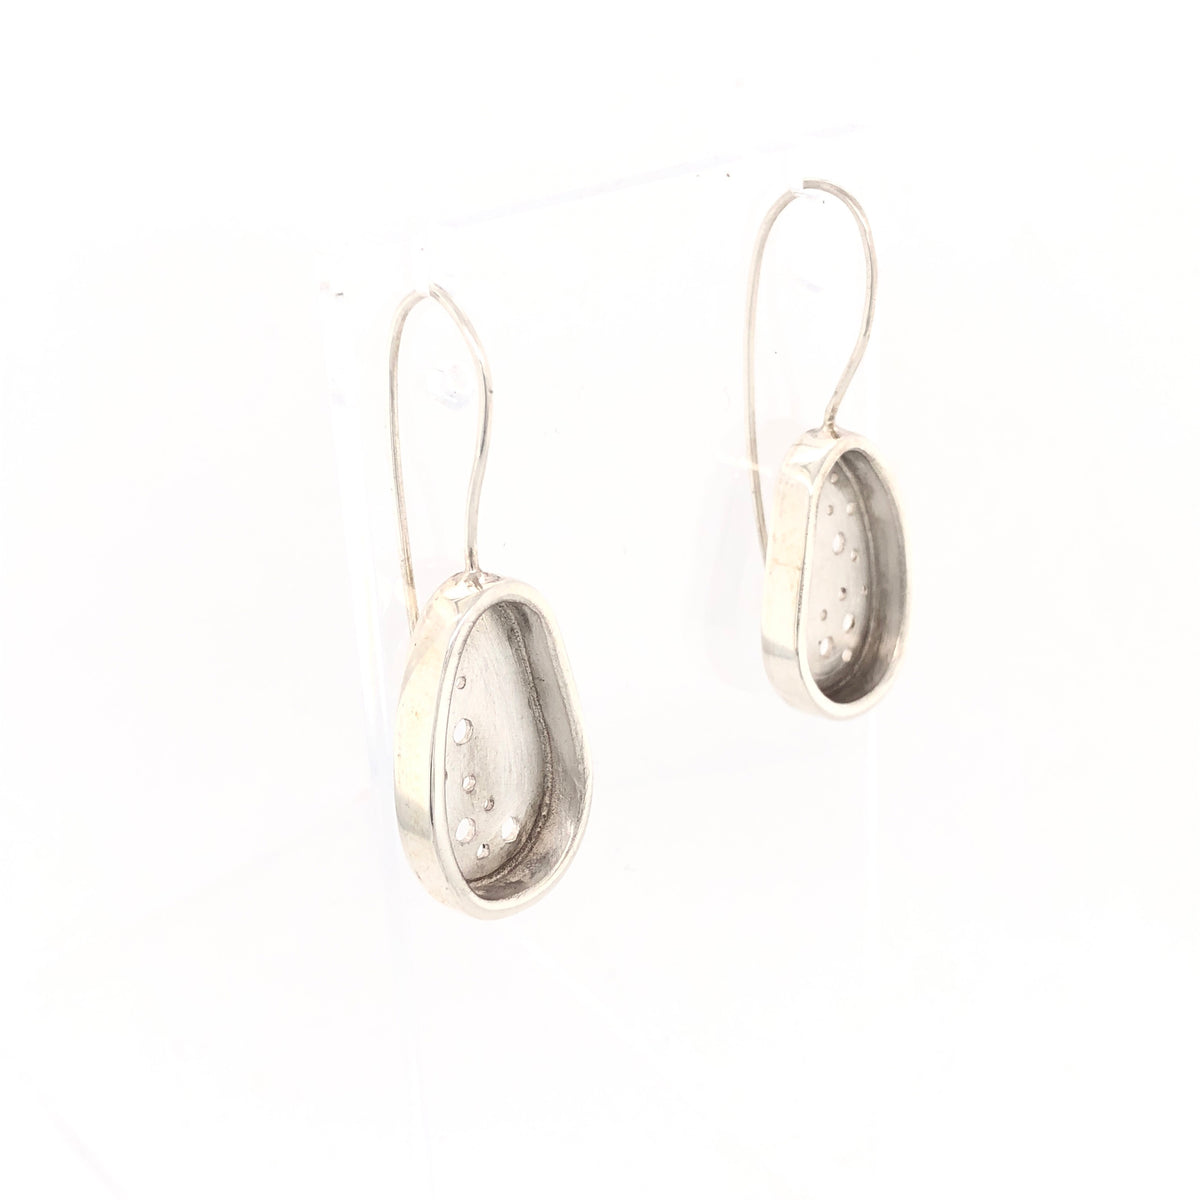 Bright pebble earrings